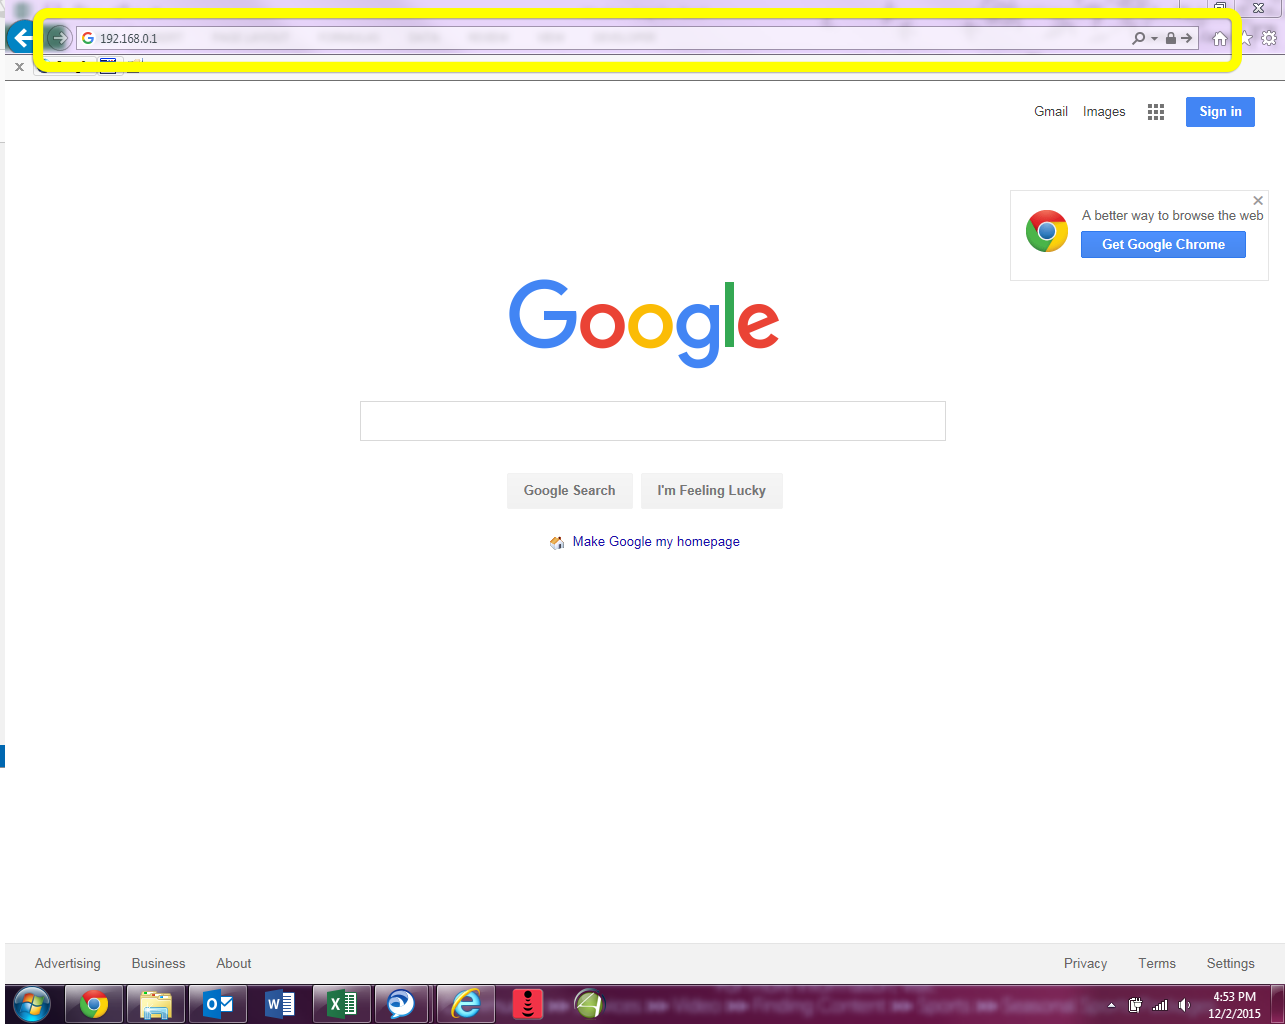 internet browser showing modem I.P. address in address bar